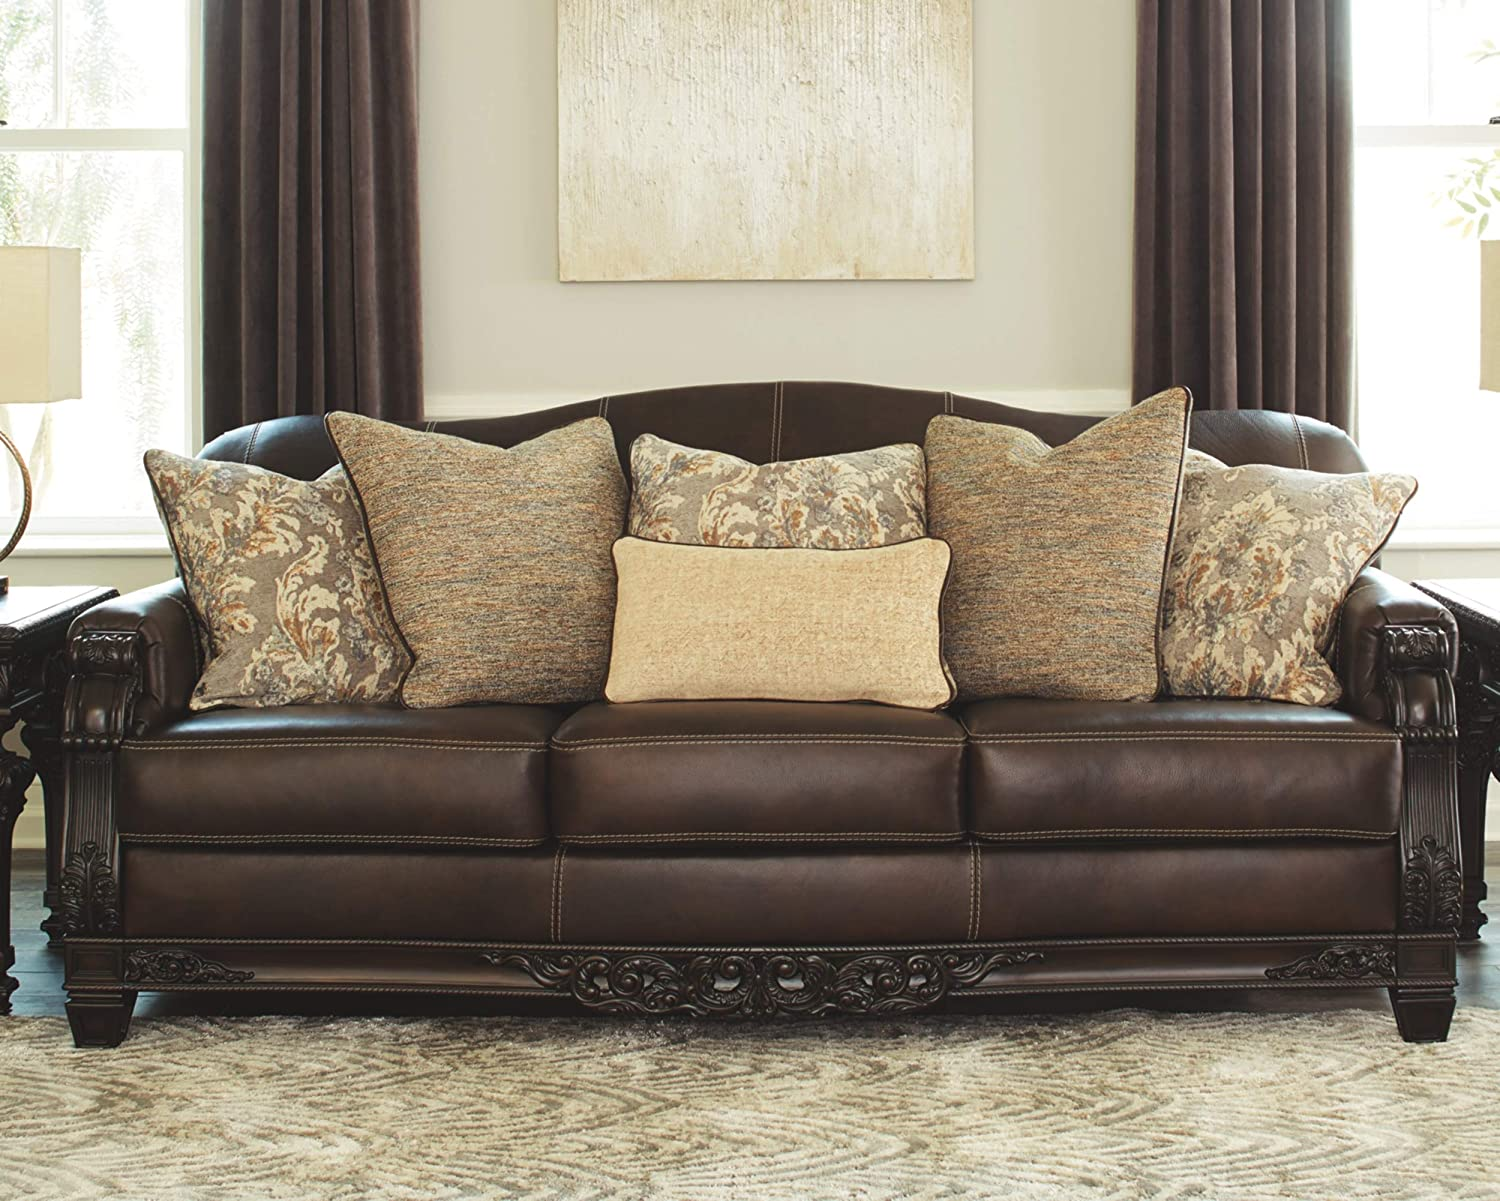 Best Buy Faux Leather Sofa Review Free Shipping